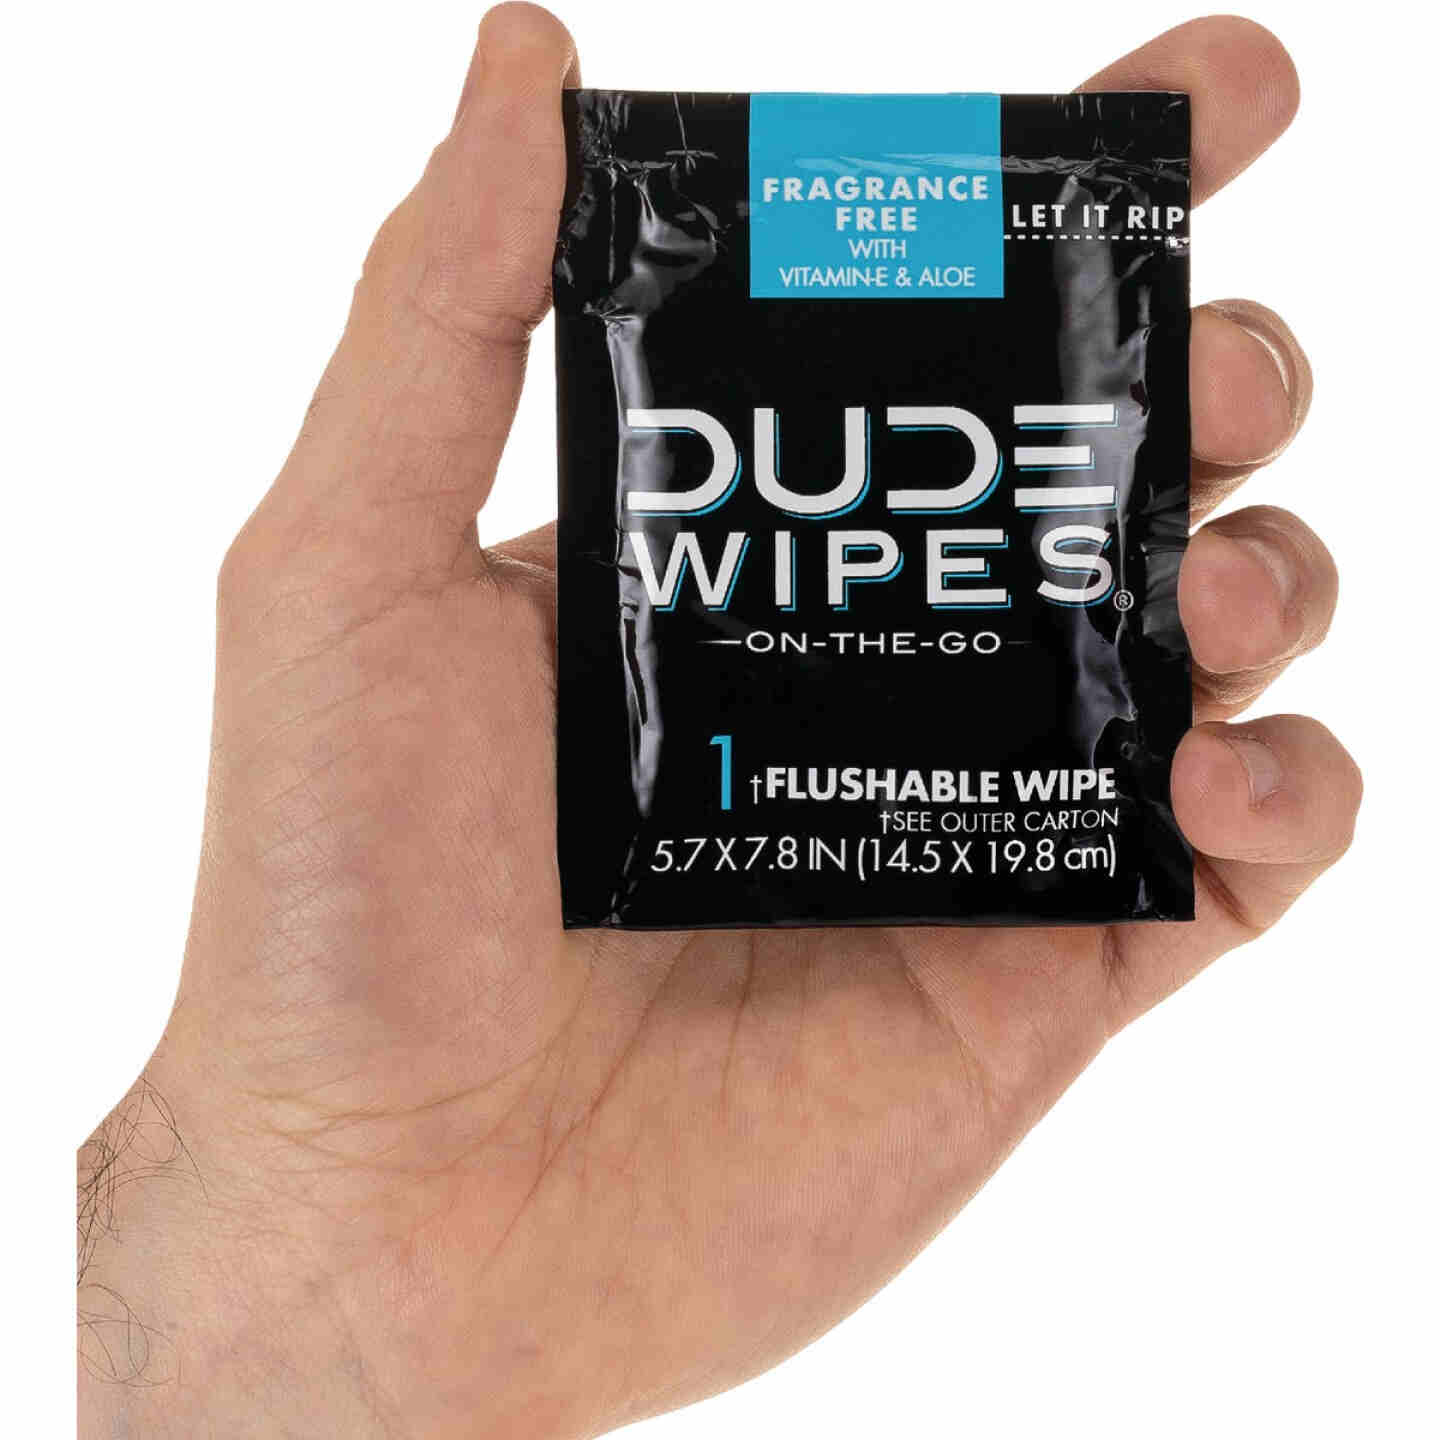 Dude Wipes On-The-Go Flushable Wipes Singles (15-Count) Image 2